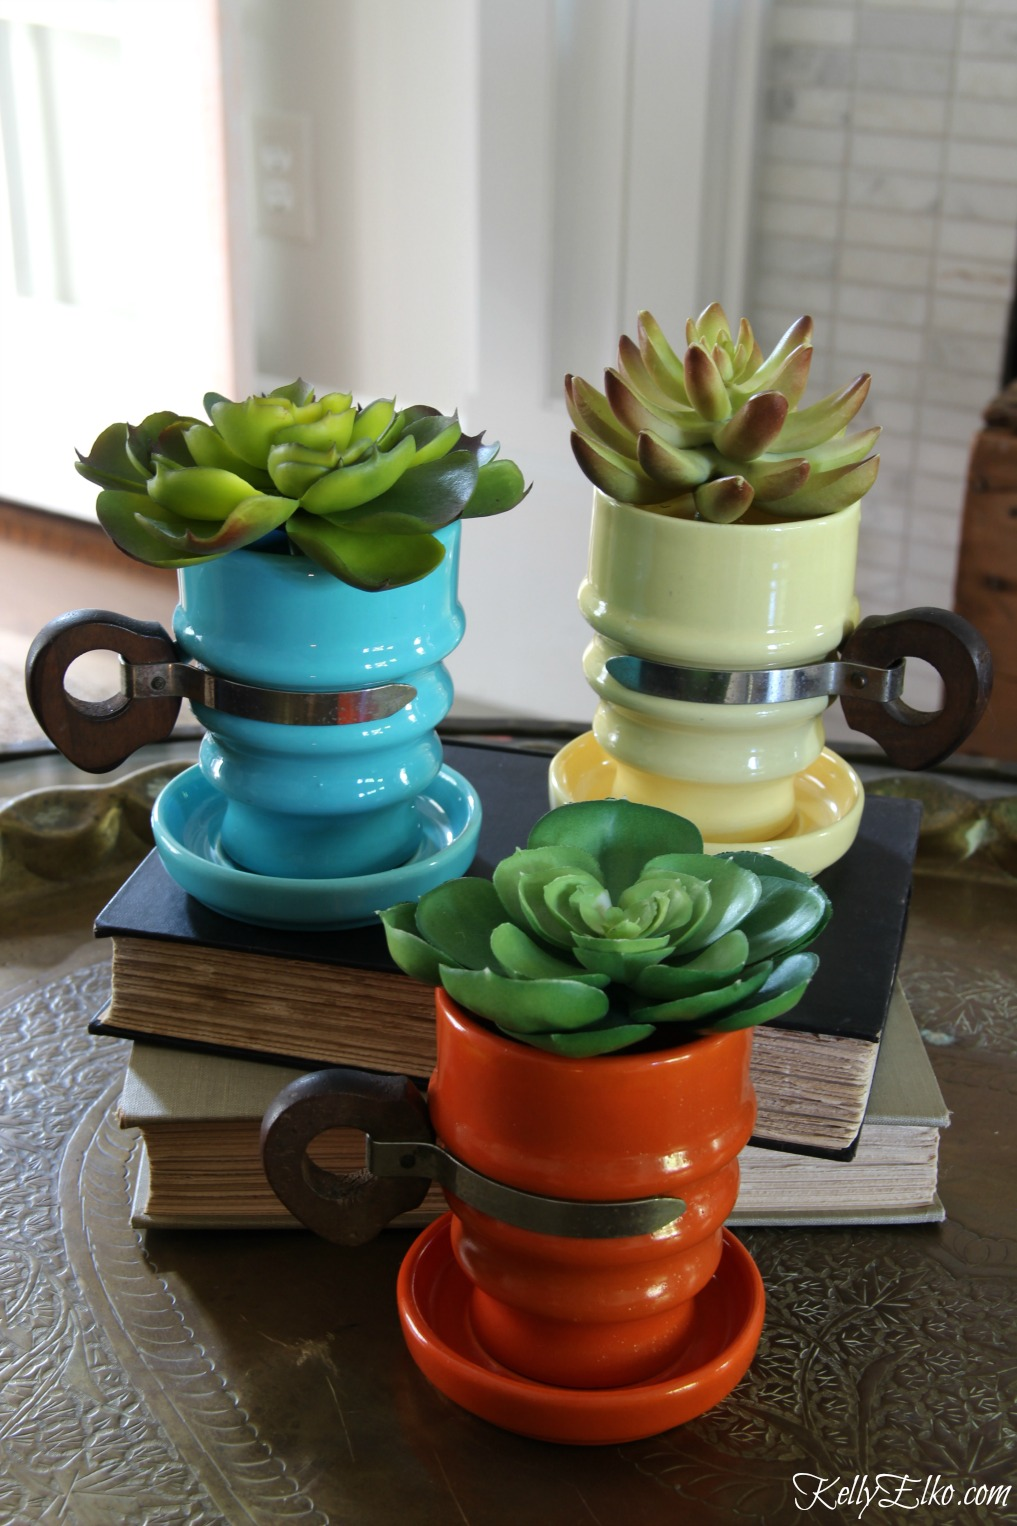 Love this trio of vintage metlox mugs filled with succulents kellyelko.com